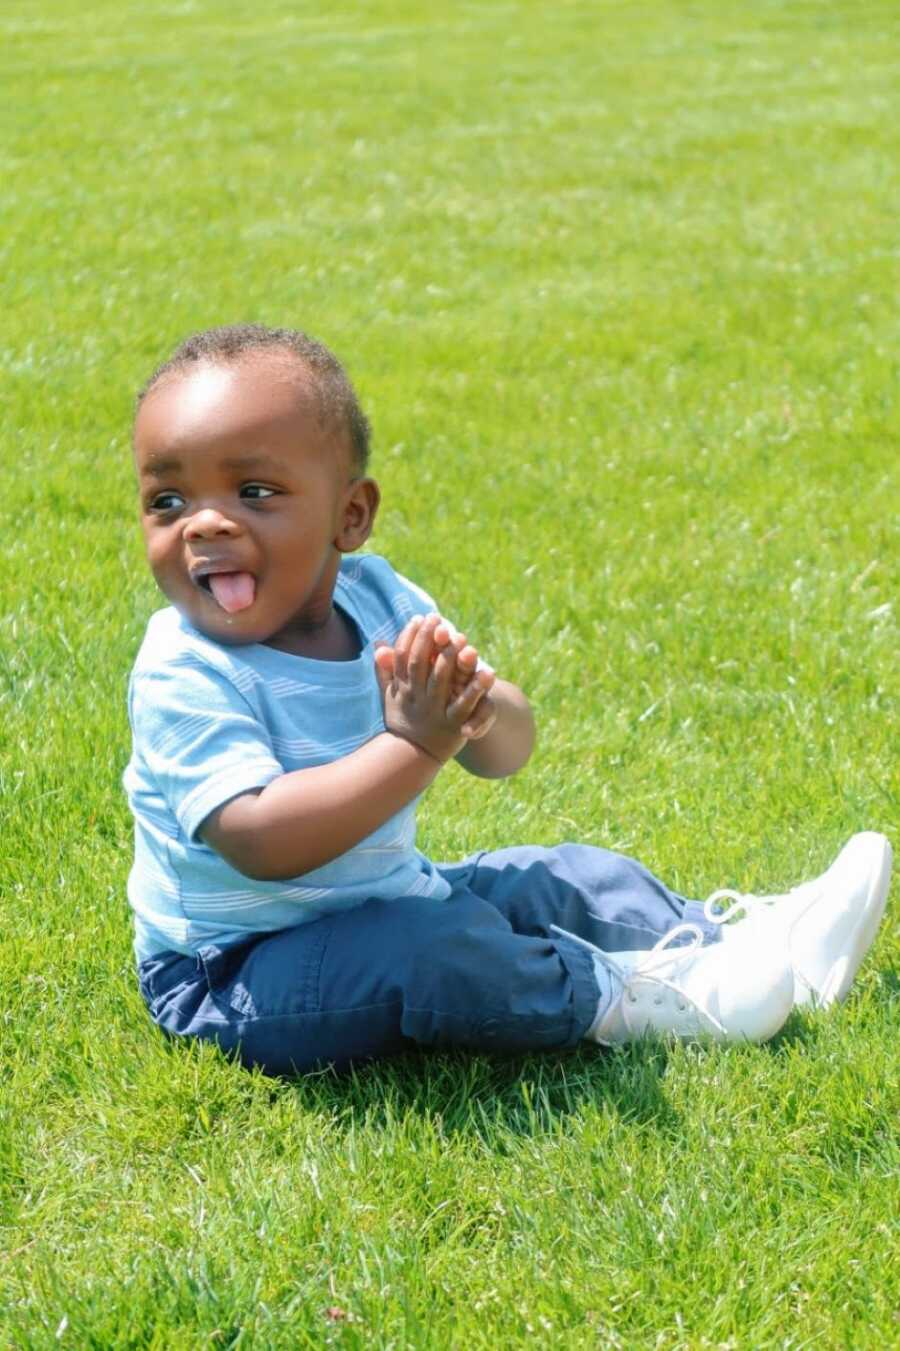 Young single mom takes a photo of her son clapping while enjoying the sunshine